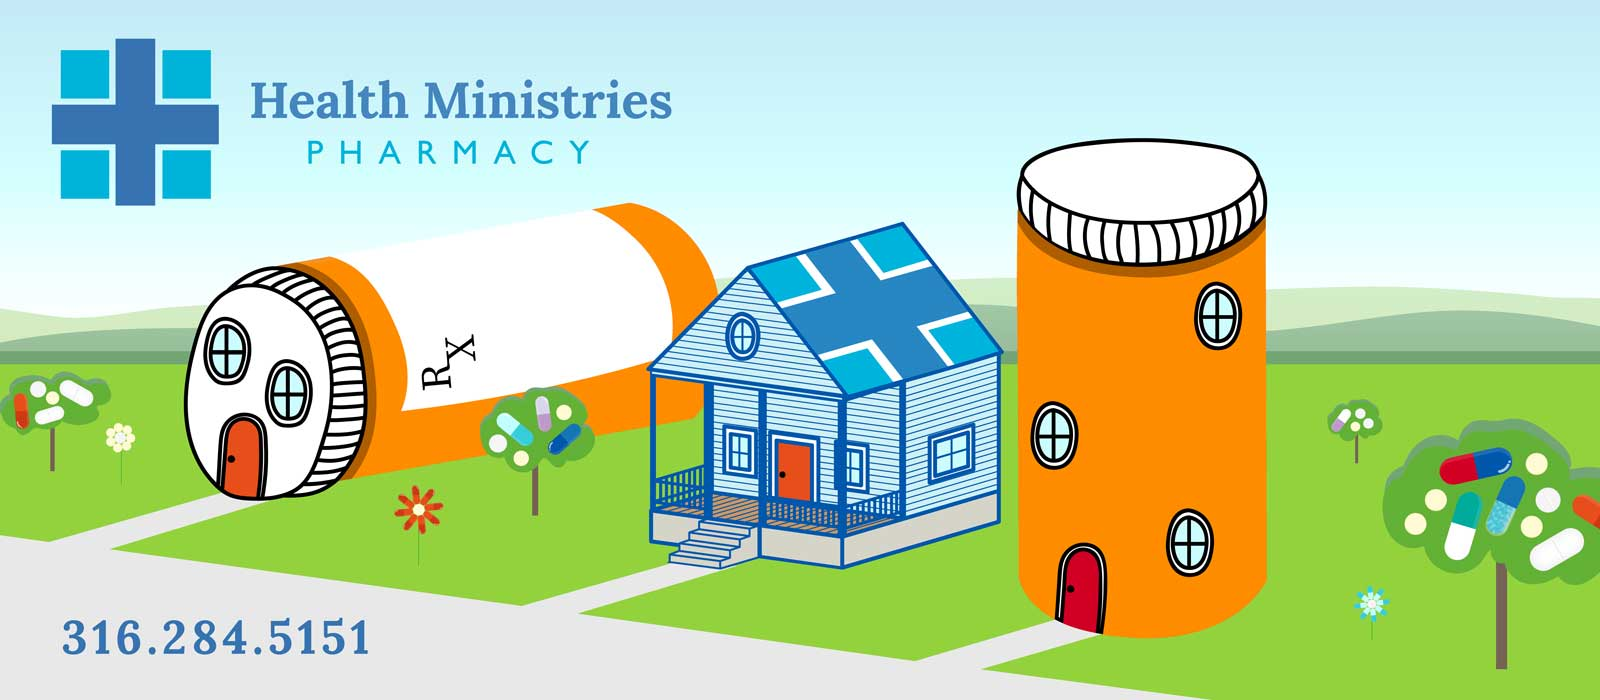 Health Ministries pharmacy banner artwork